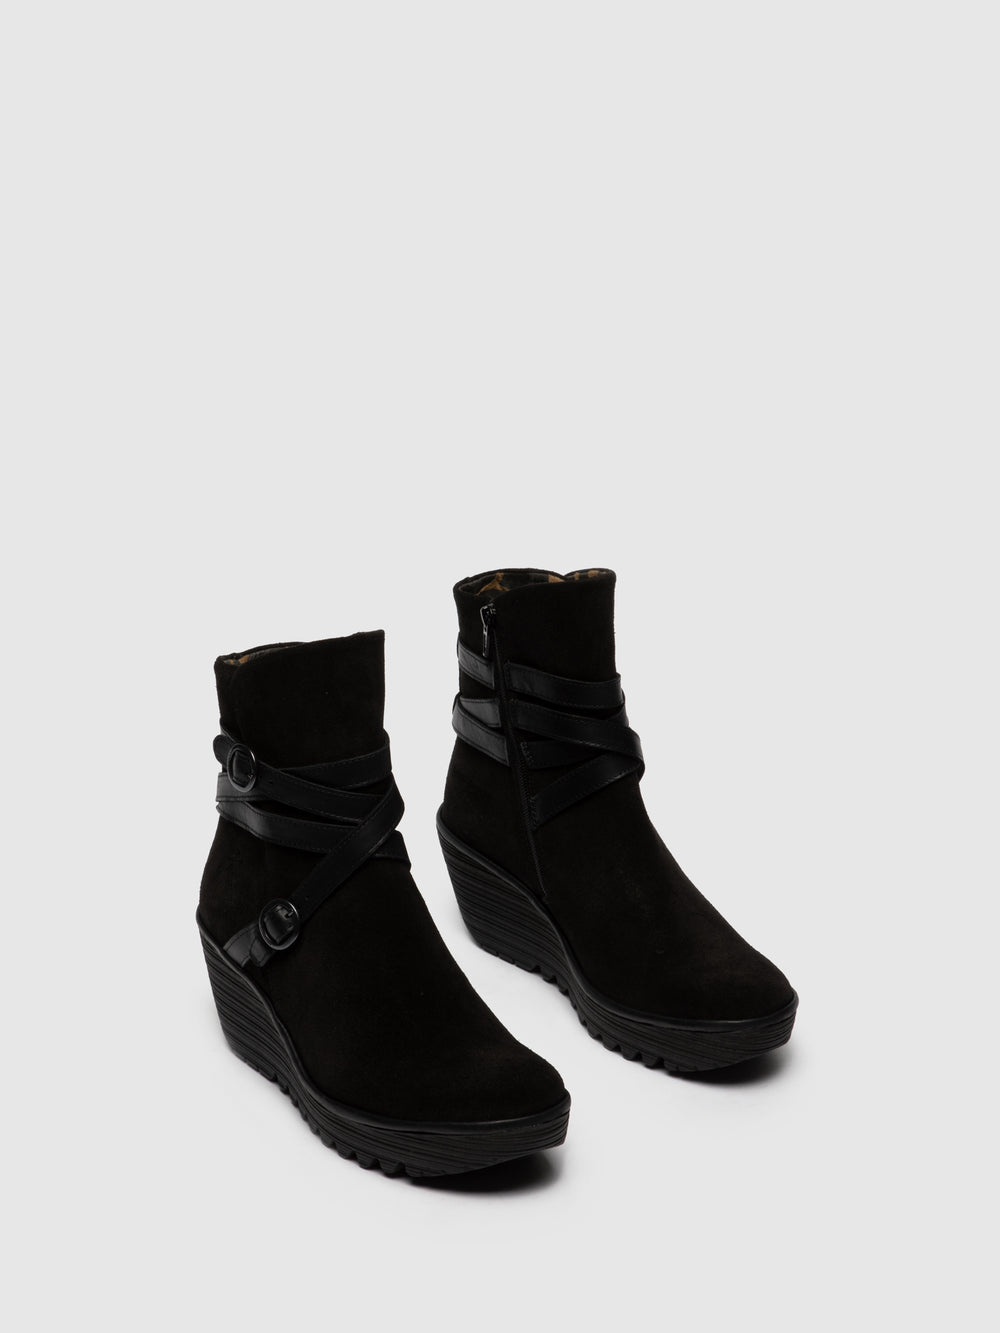 Buckle Ankle Boots YOMO249FLY OILSUEDE/RUG BLACK